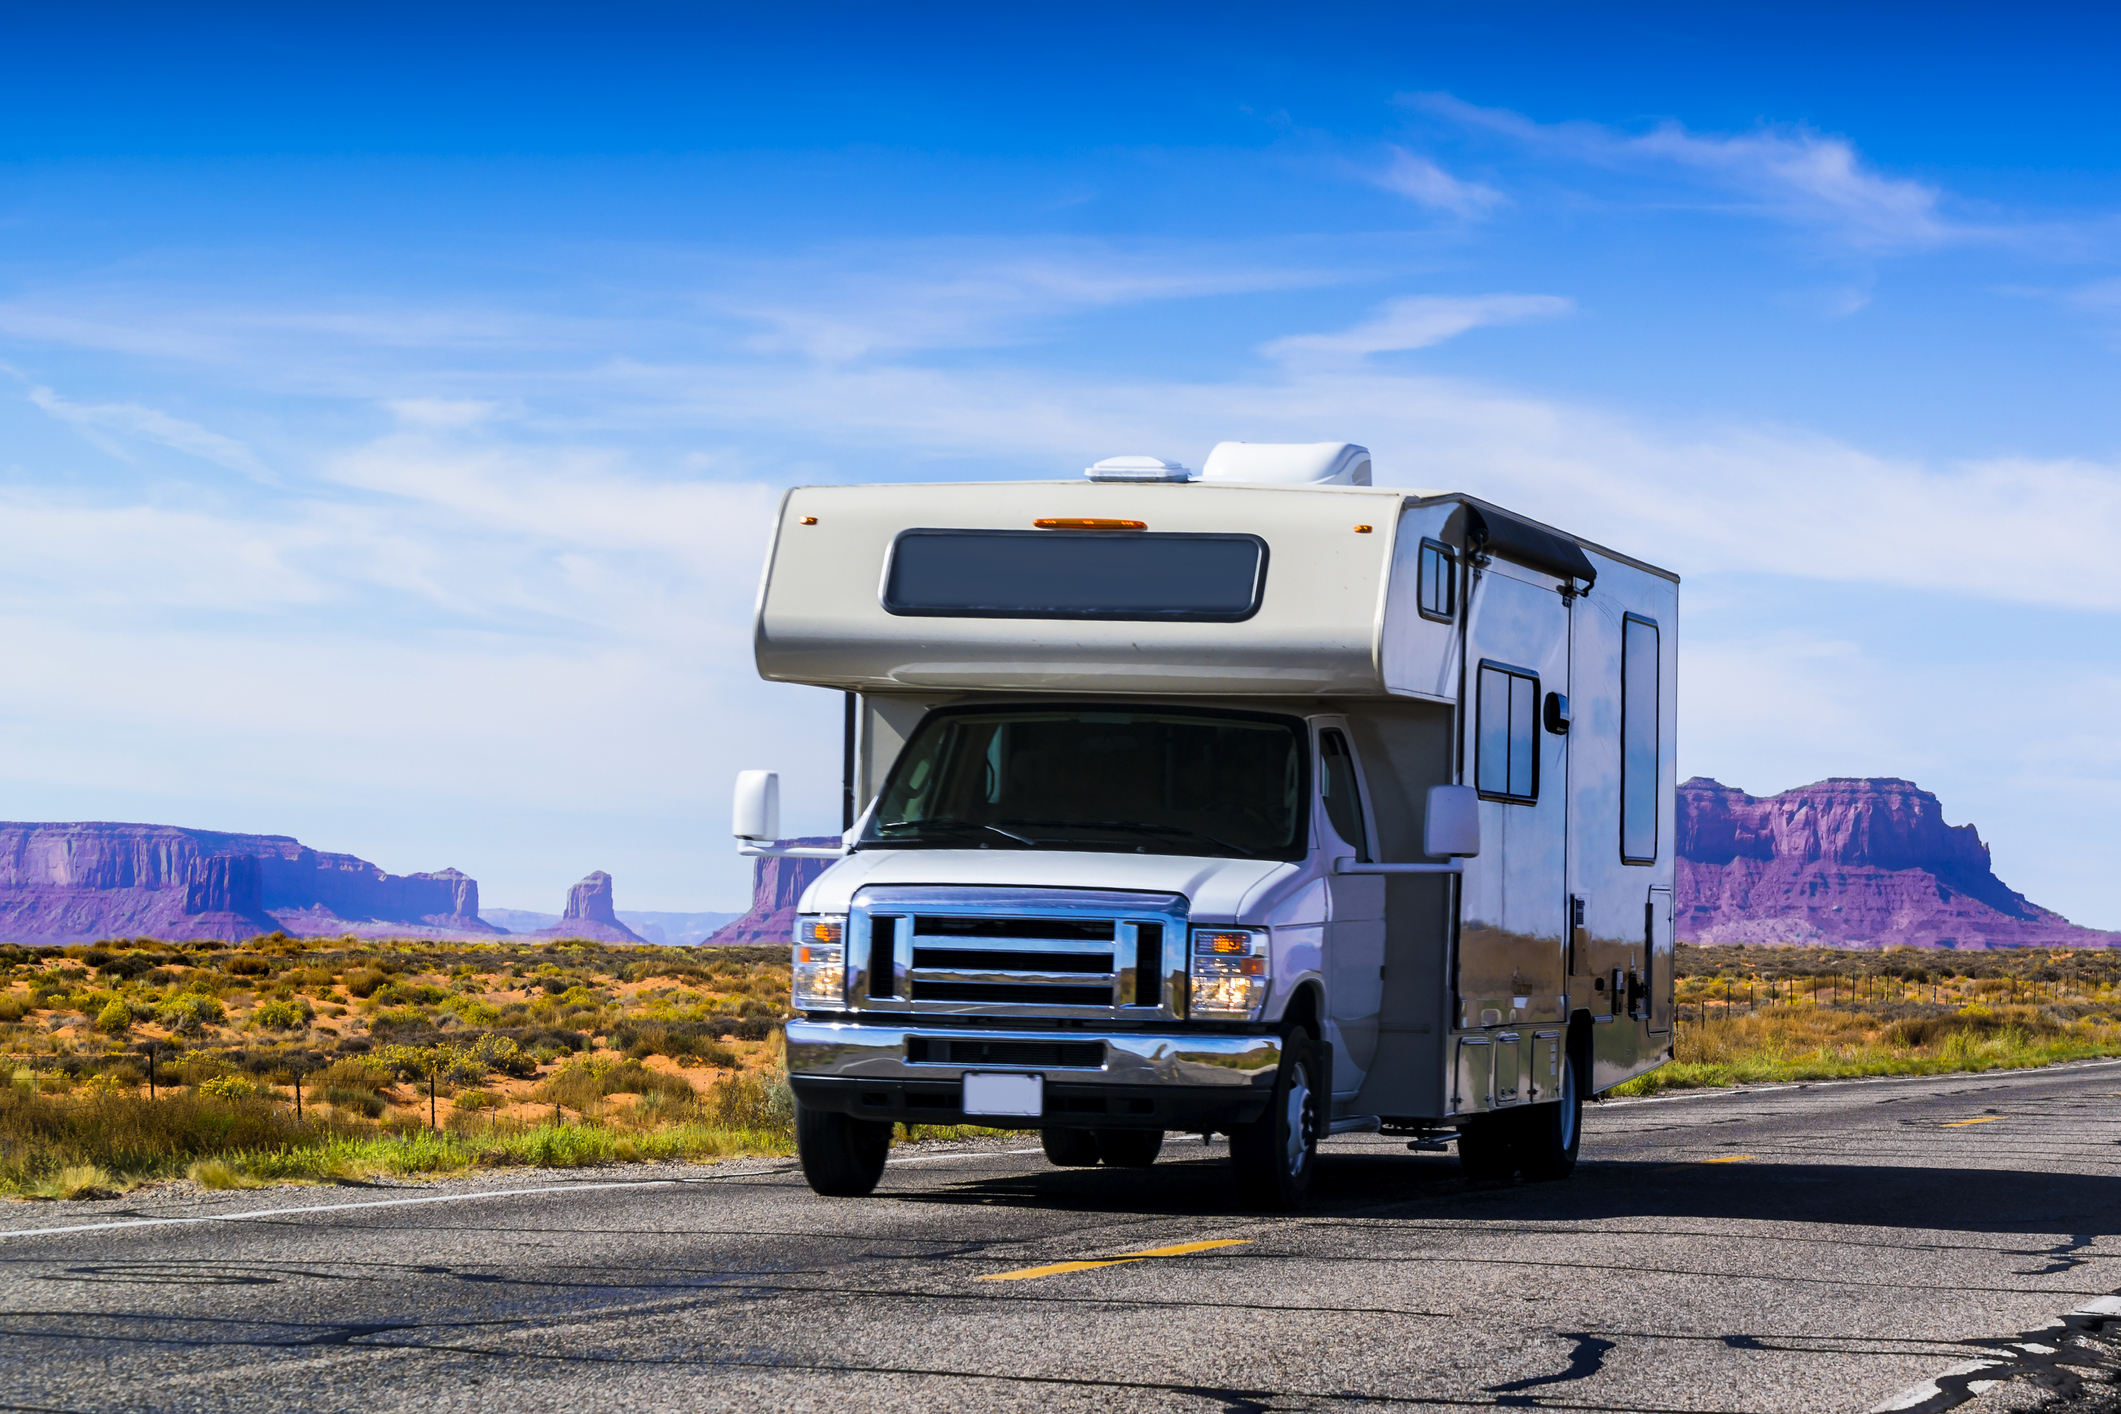 RV on it's way to the RV Dealer